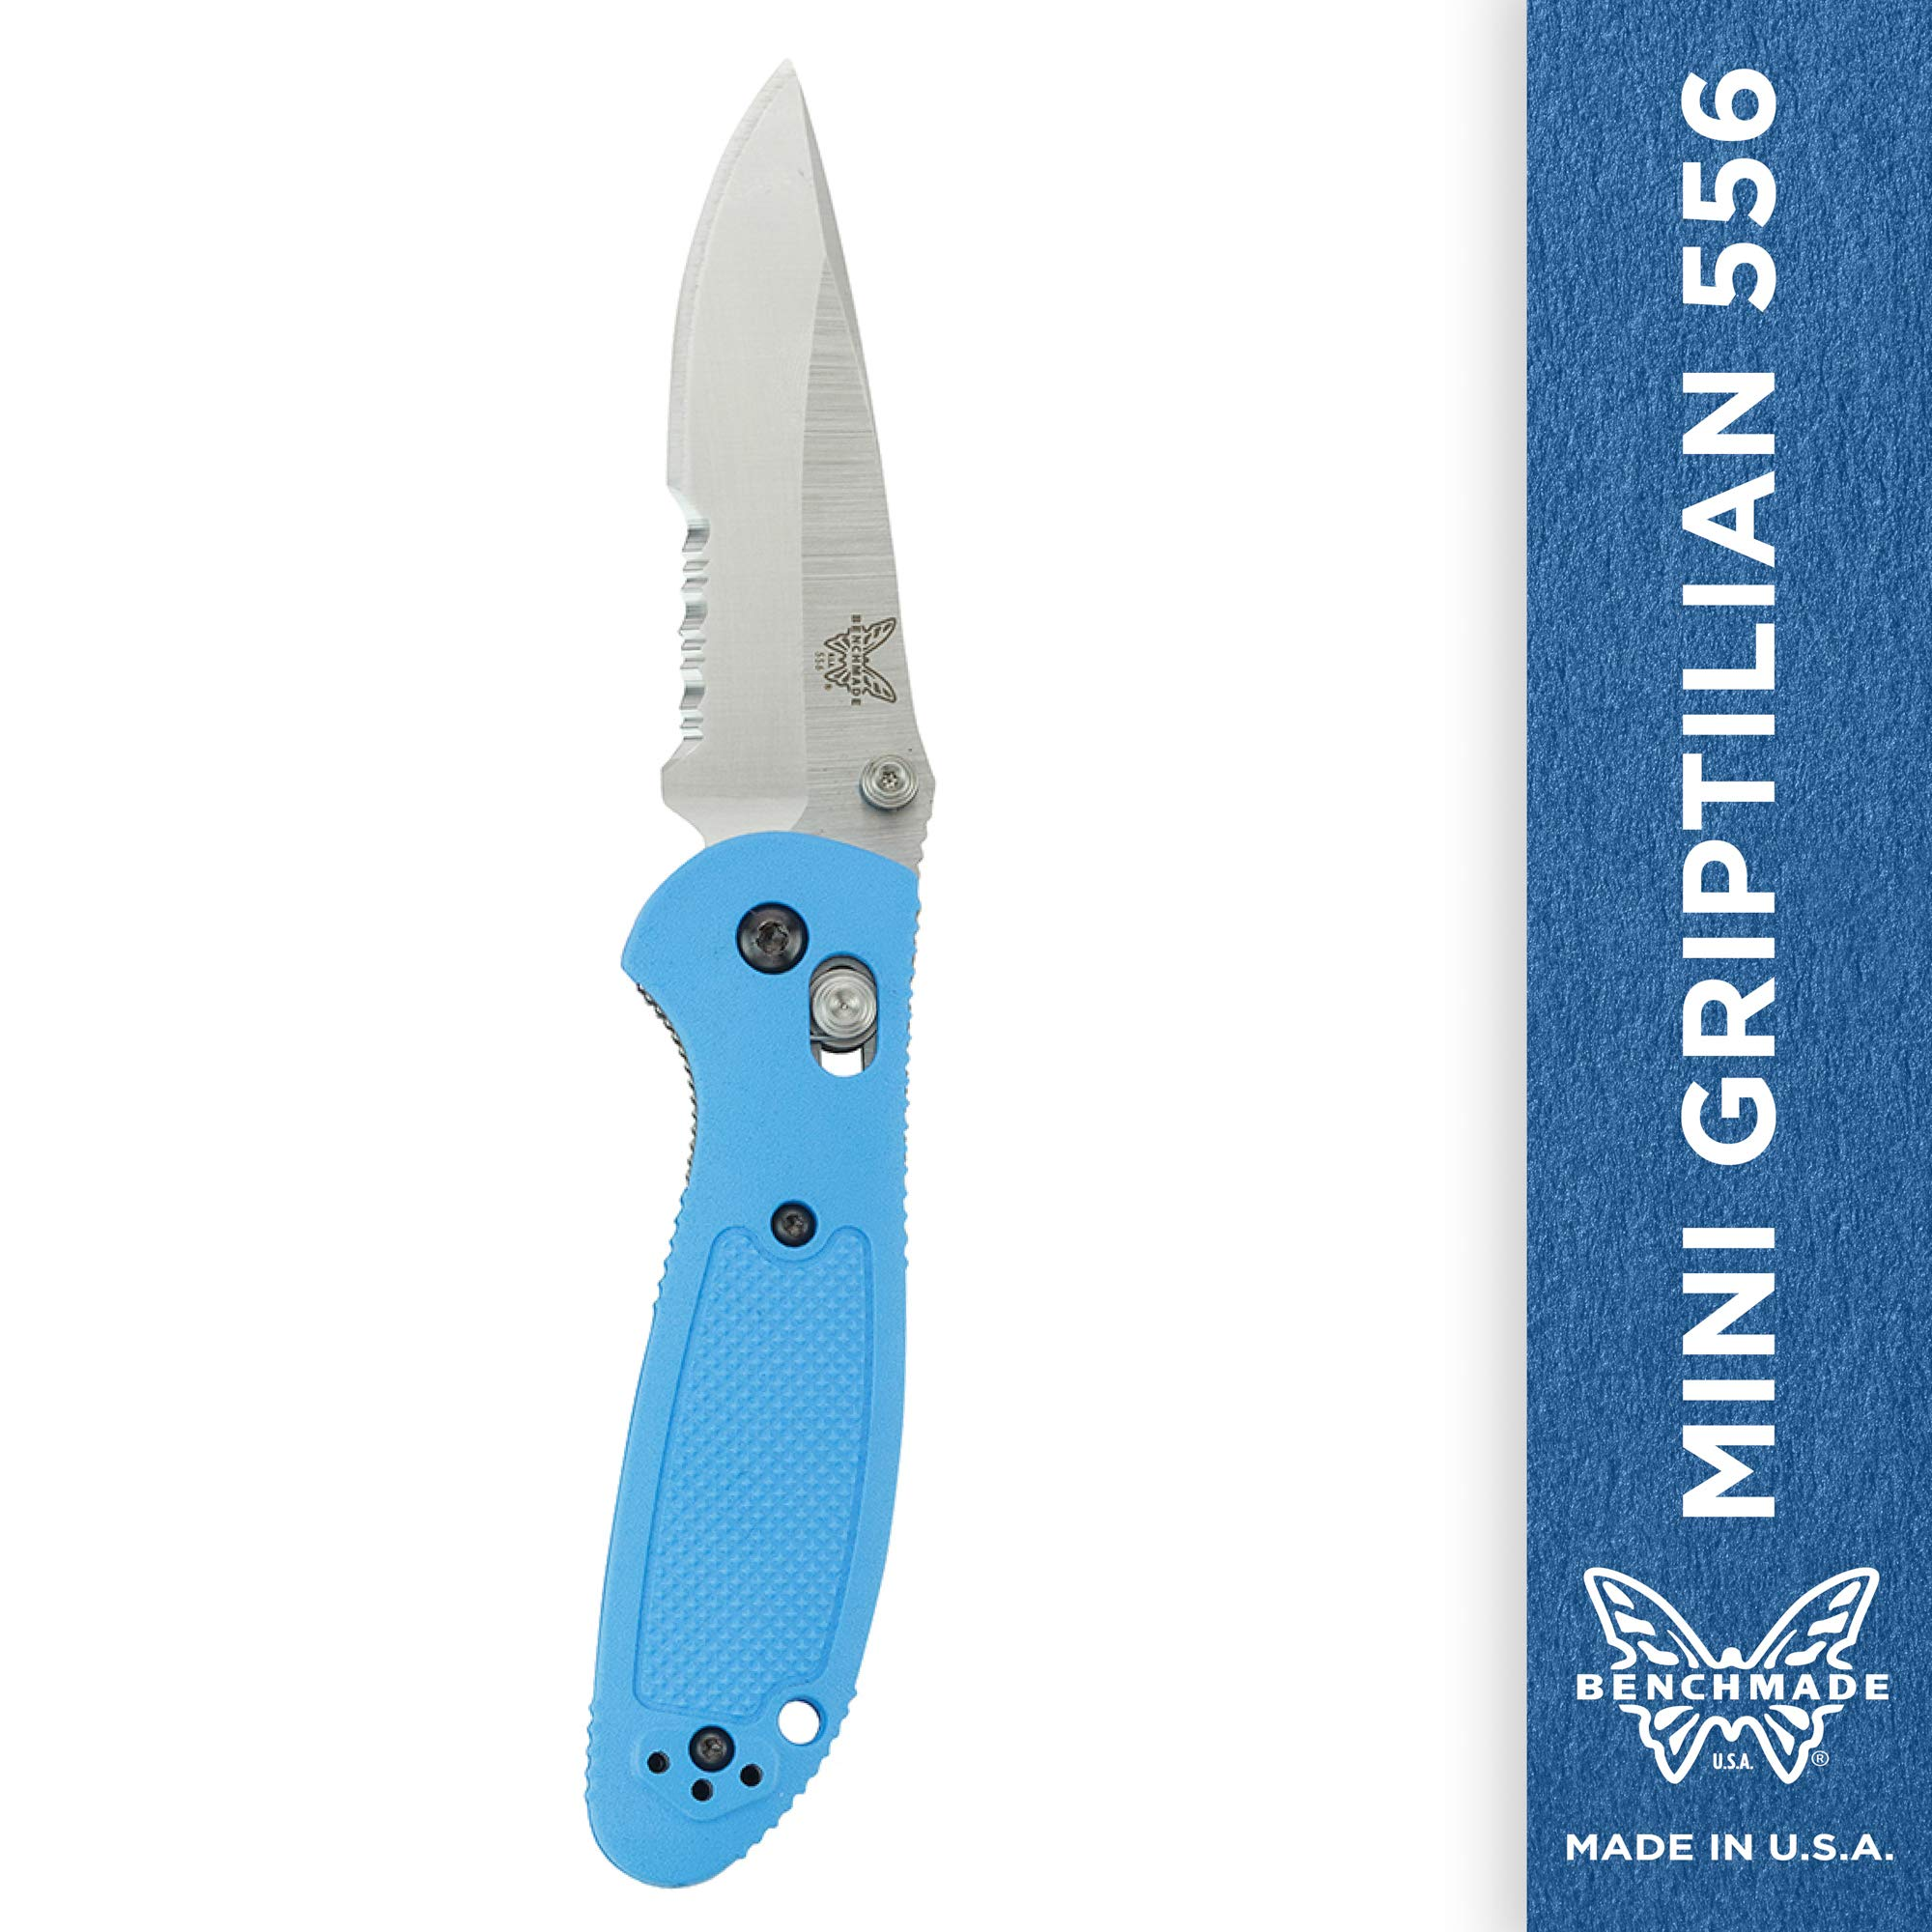 Benchmade - Mini Griptilian 556 EDC Manual Open Folding Knife Made in USA with CPM-S30V Steel, Drop-Point Blade, Serrated Edge, Satin Finish, Blue Handle by Benchmade (Image #1)